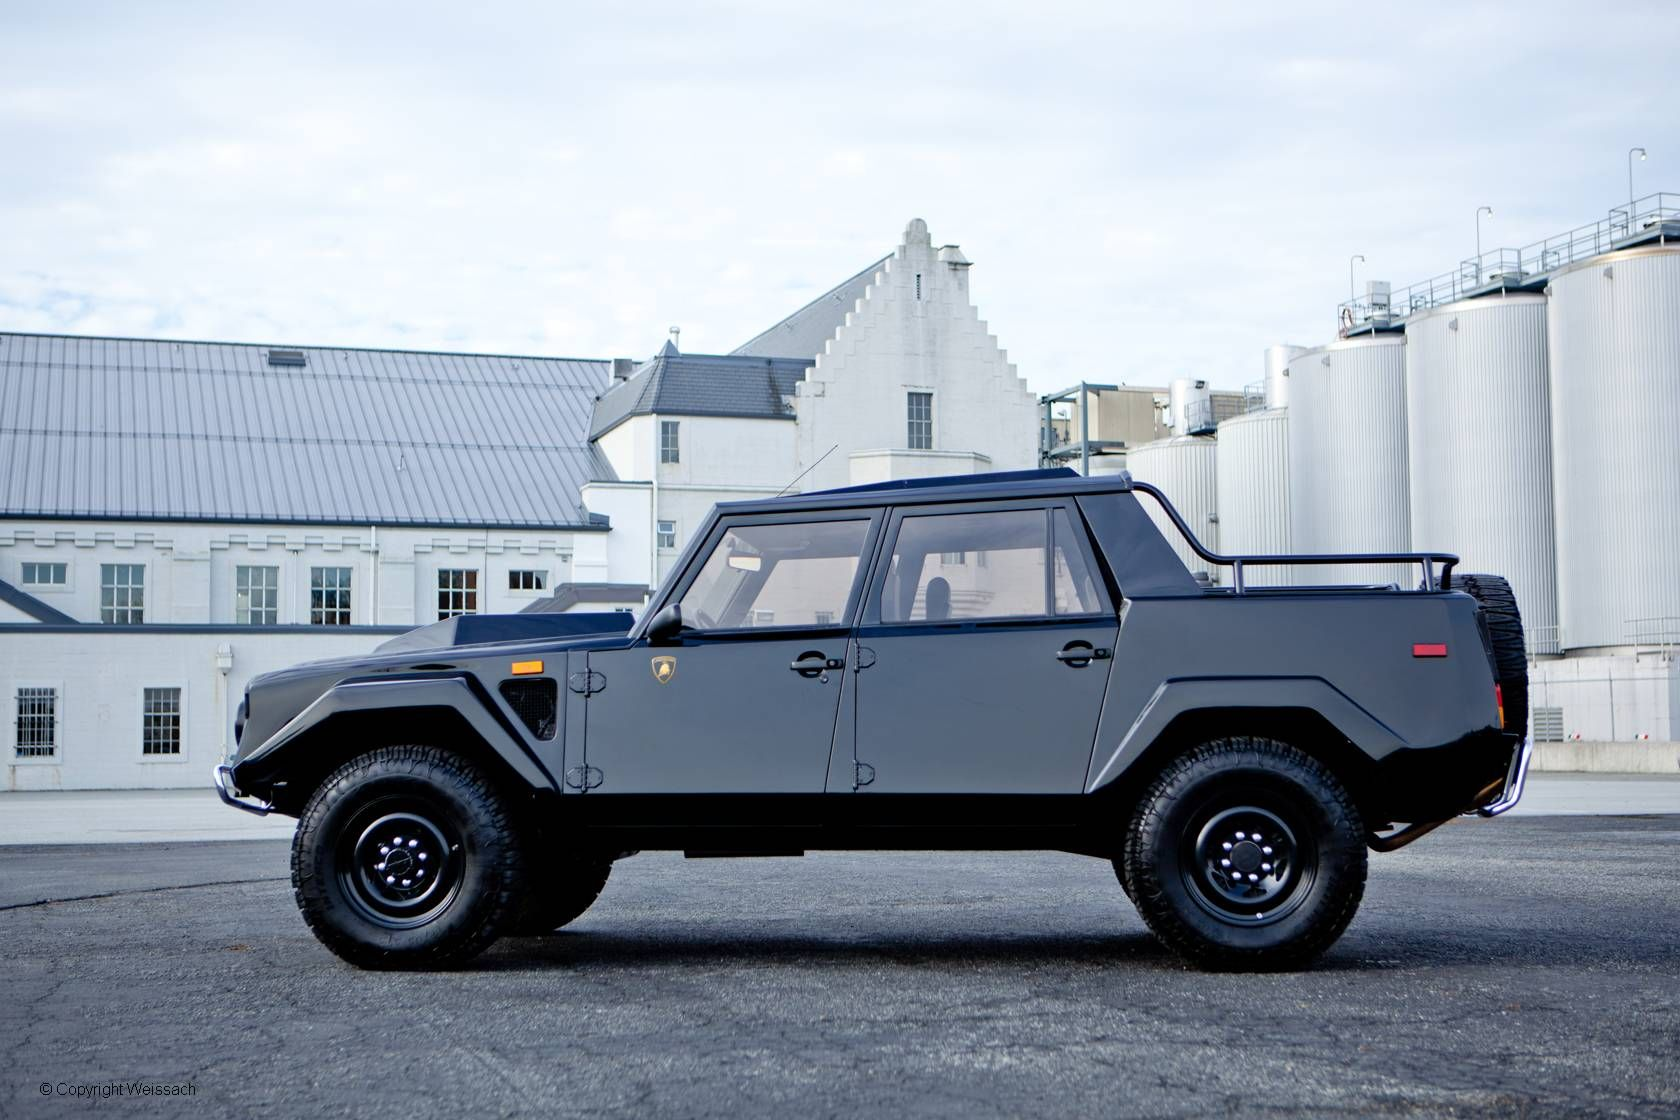 1988 Lamborghini LM 002 5-Speed Manual, Black with Black Leather Interior, V12, 5-Speed Manual. www.weissach.com